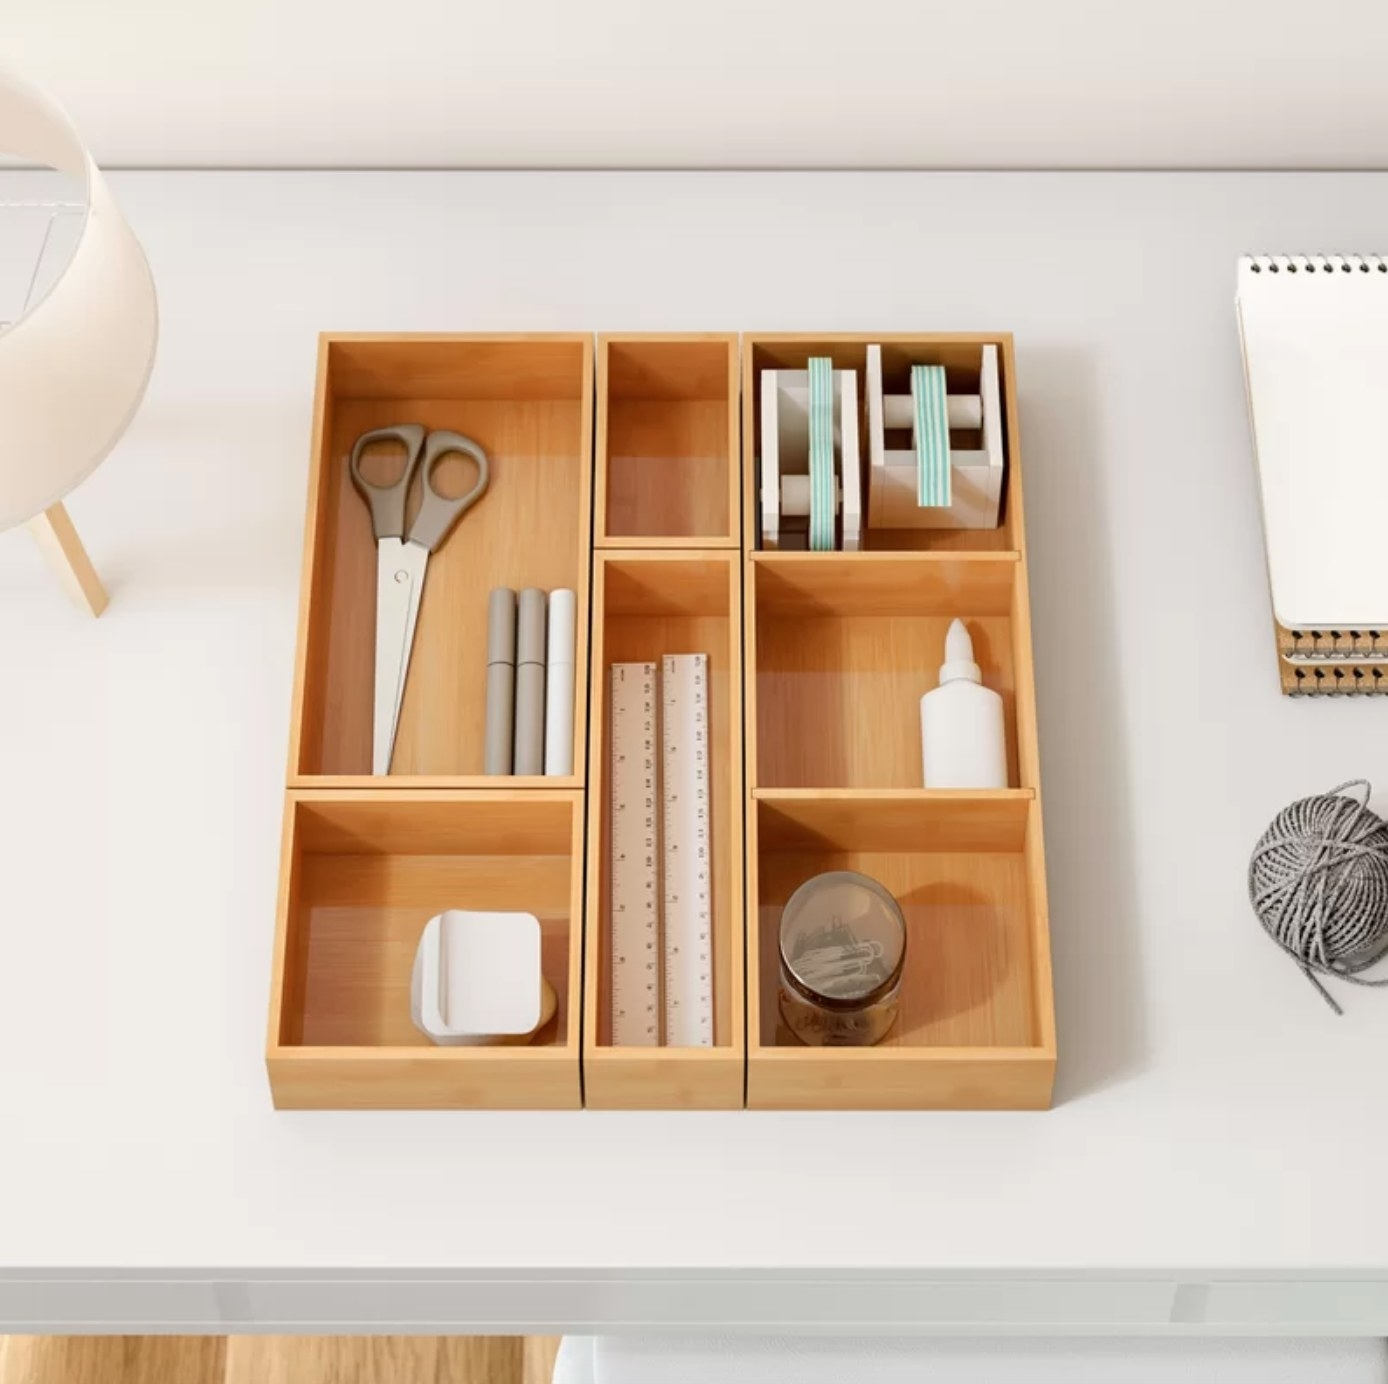 The five-piece bamboo drawer organizer